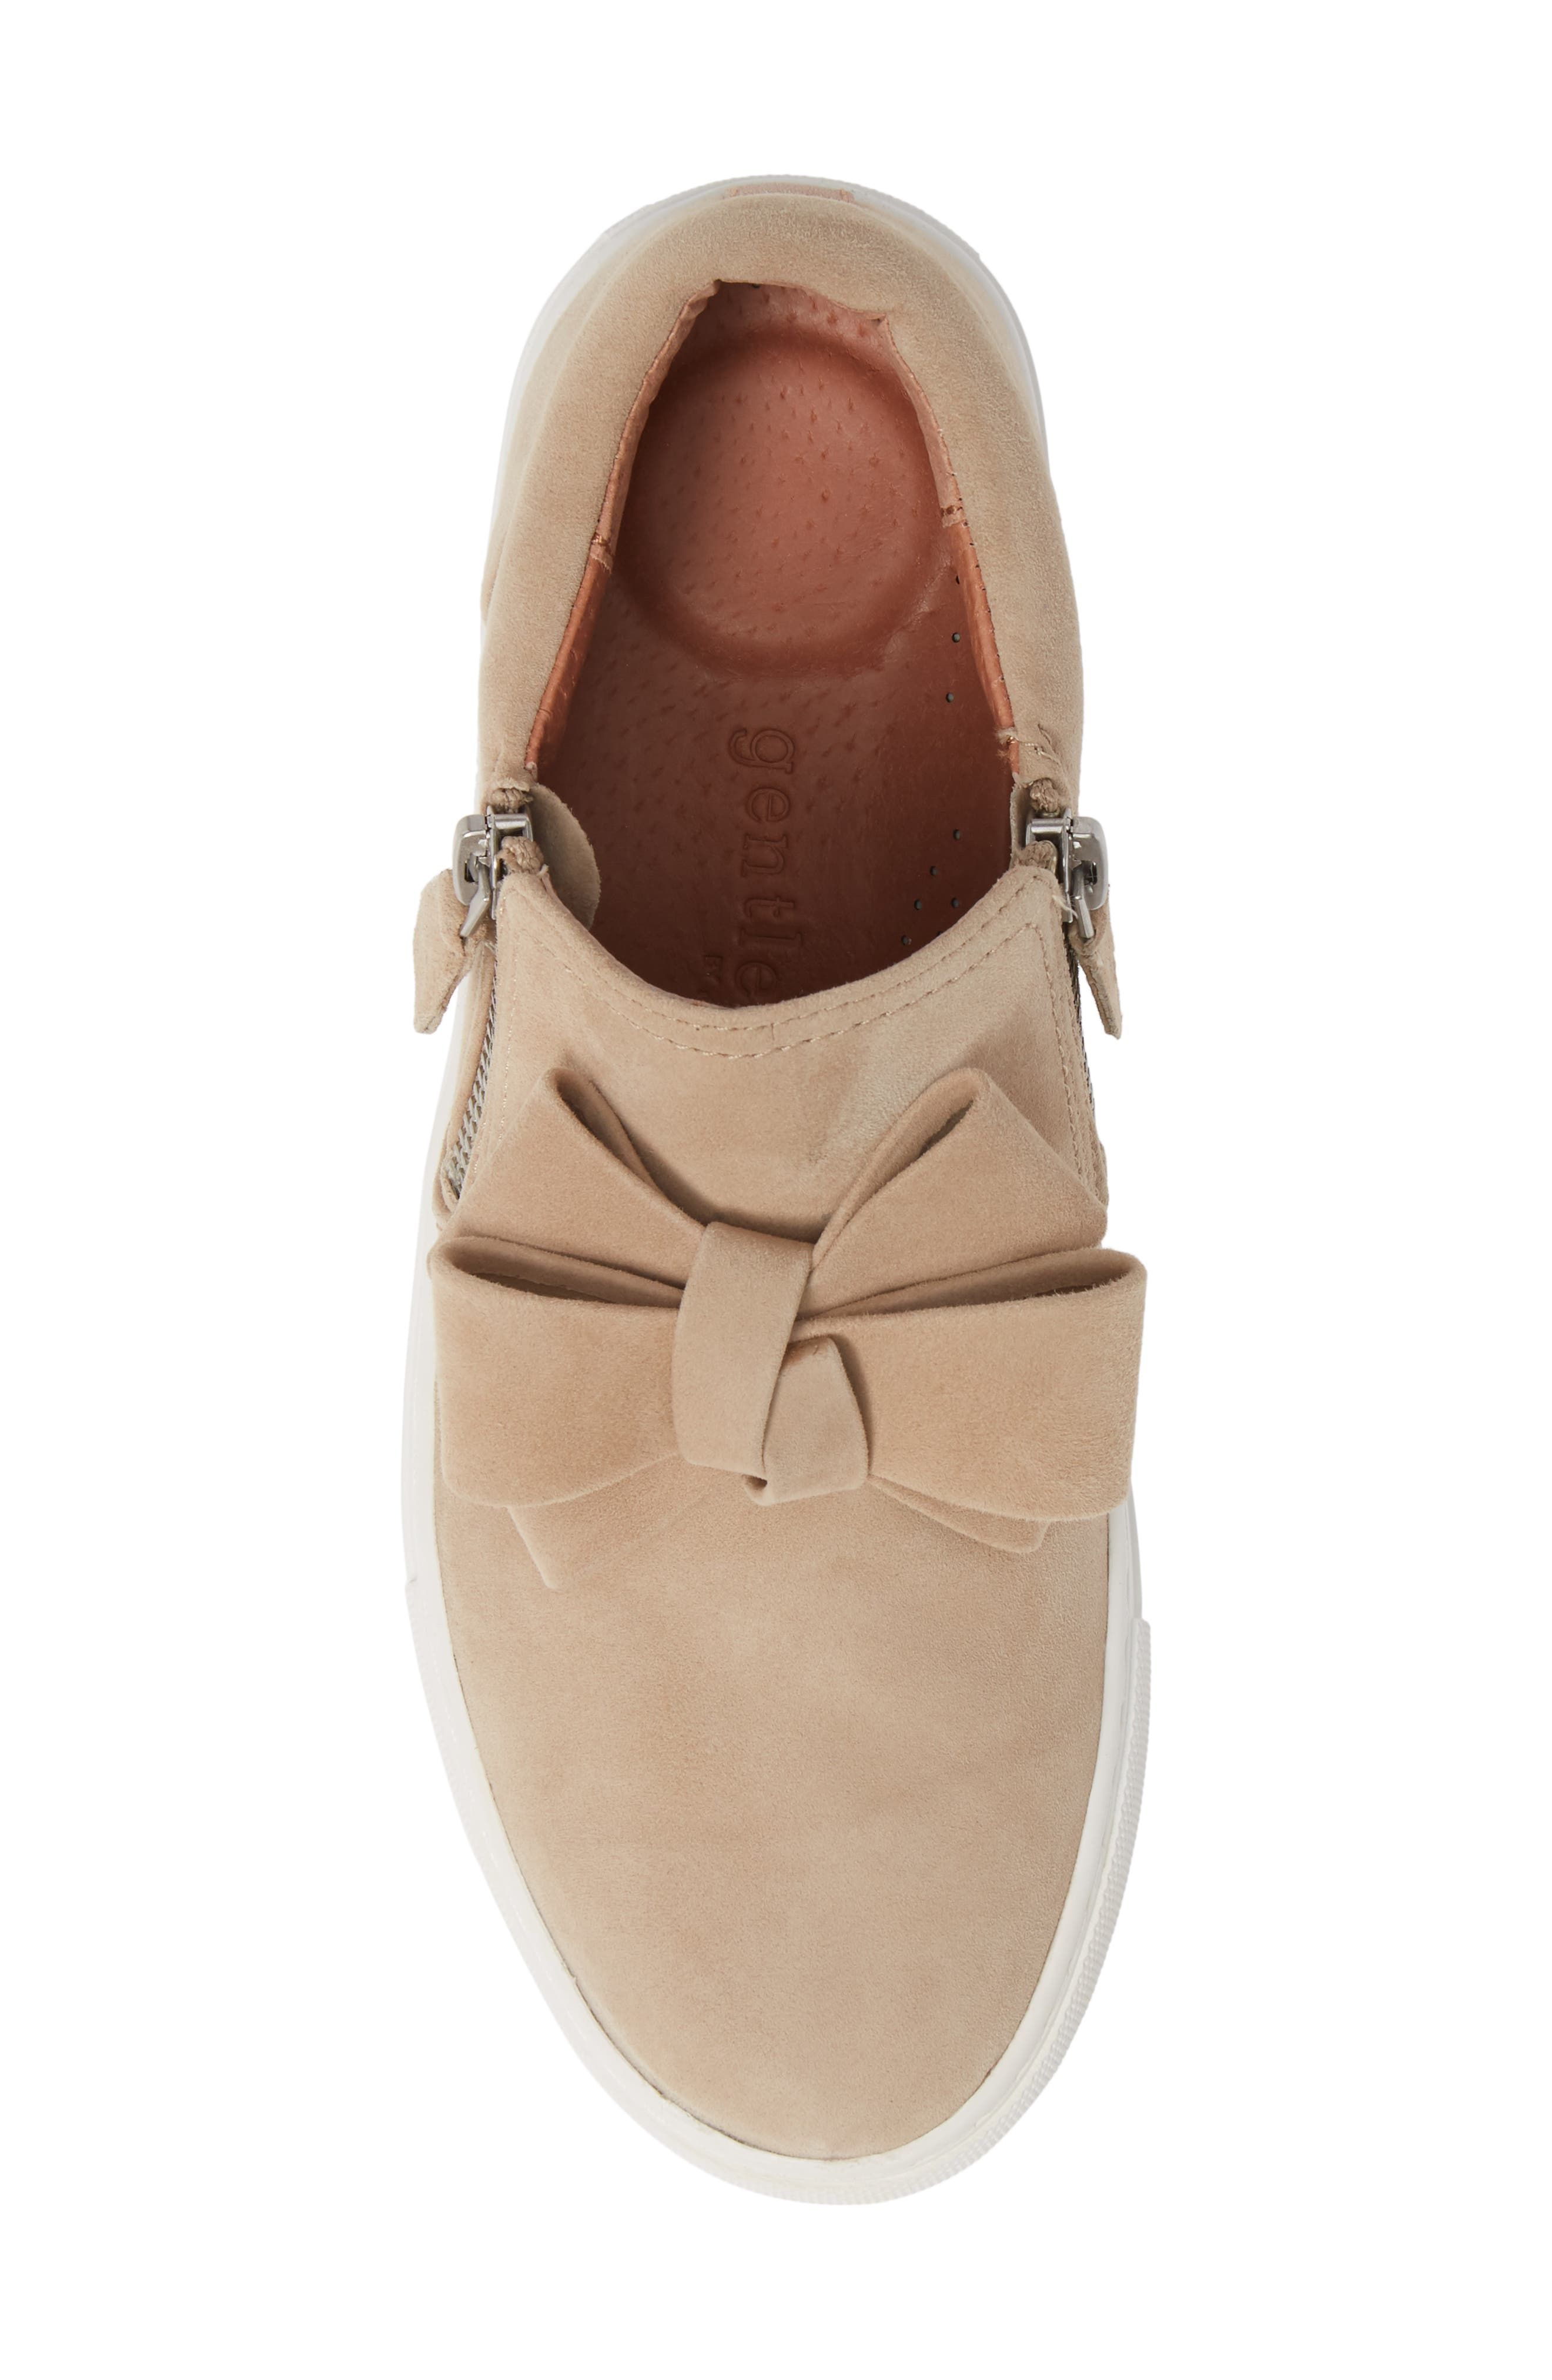 GENTLE SOULS BY KENNETH COLE, Lowe Bow Sneaker, Alternate thumbnail 5, color, CAFE SUEDE